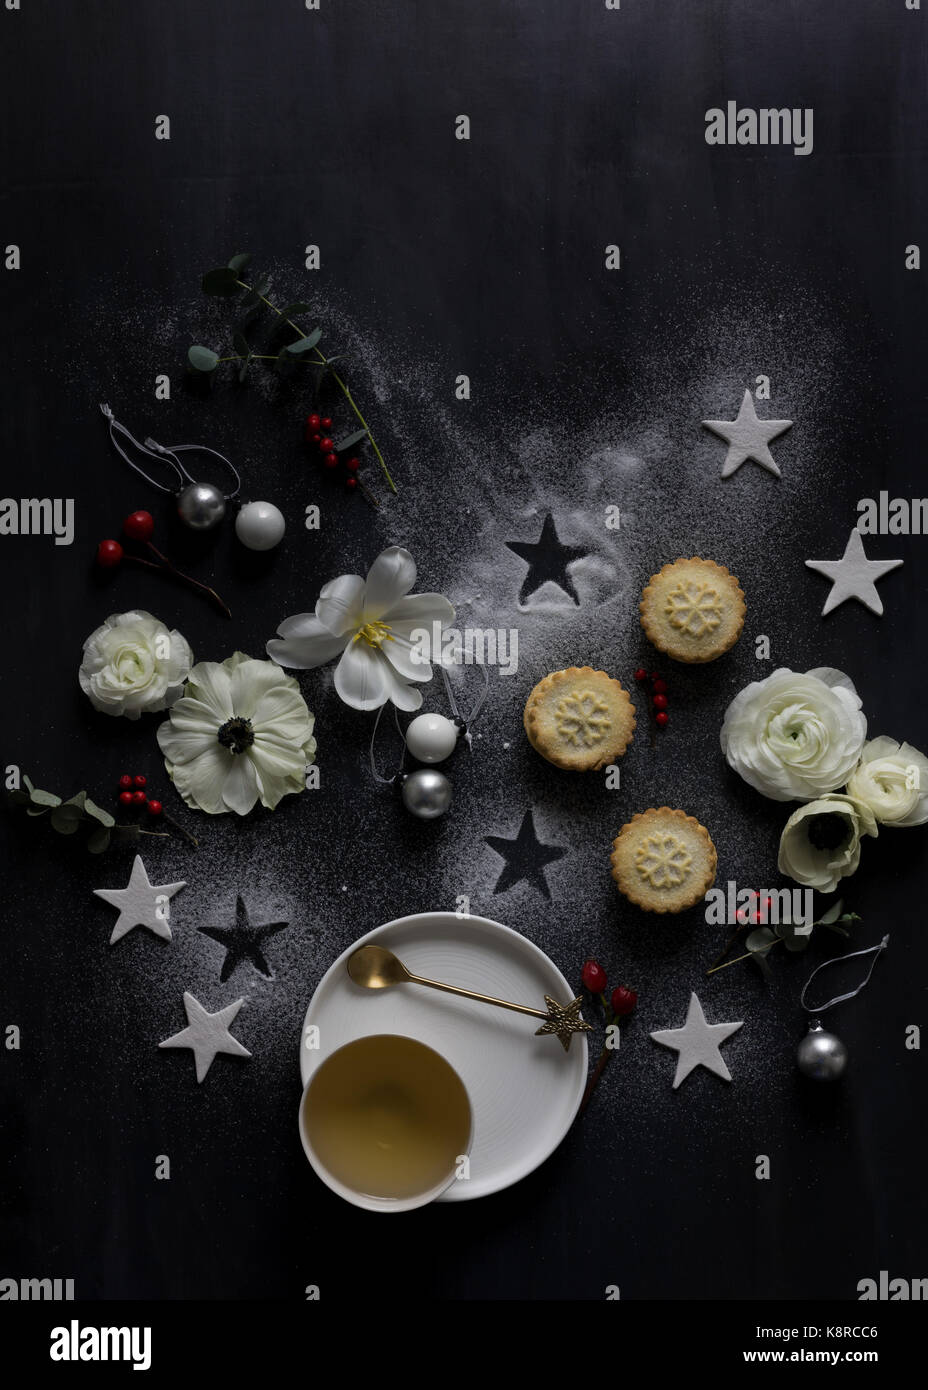 View from above of Christmas tree made of decorations, berries, cinnamon, candles and other festive objects - Stock Image